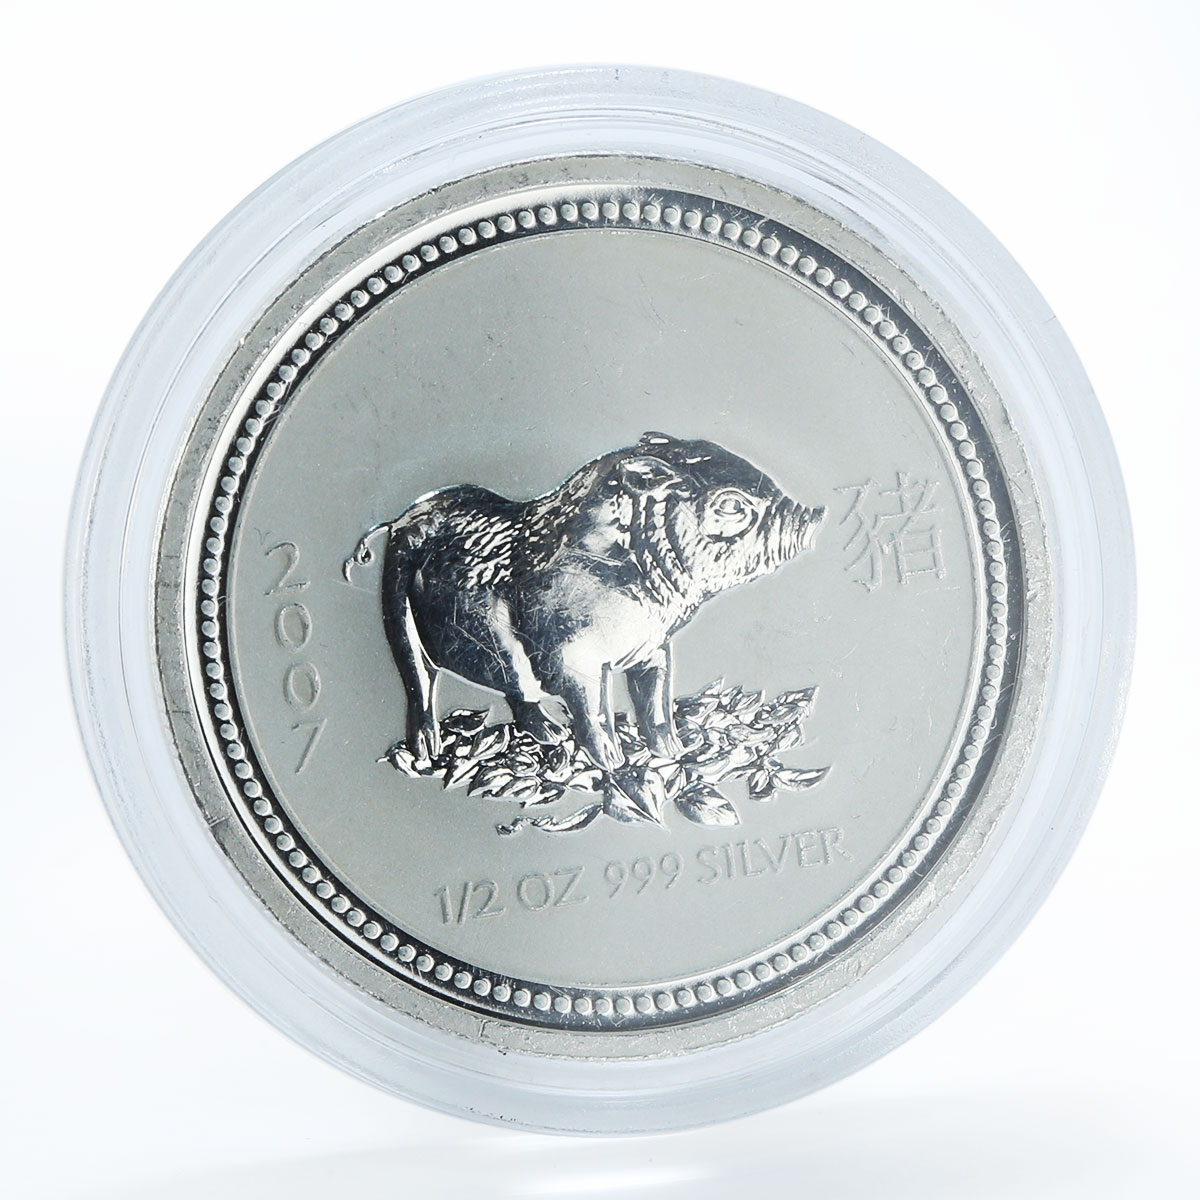 Australia 50 cents Year of The Pig Lunar Calendar Series I silver 2007